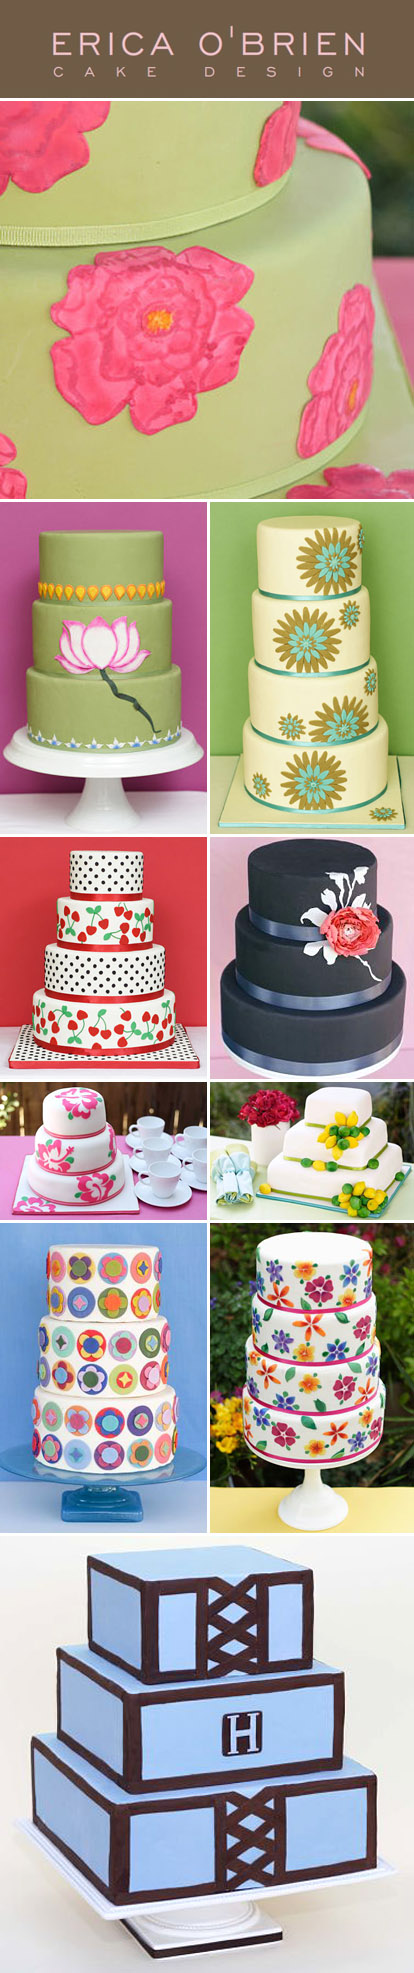 Colorful, whimsical wedding cakes from Erica O'Brien, Los Angeles wedding cake designer